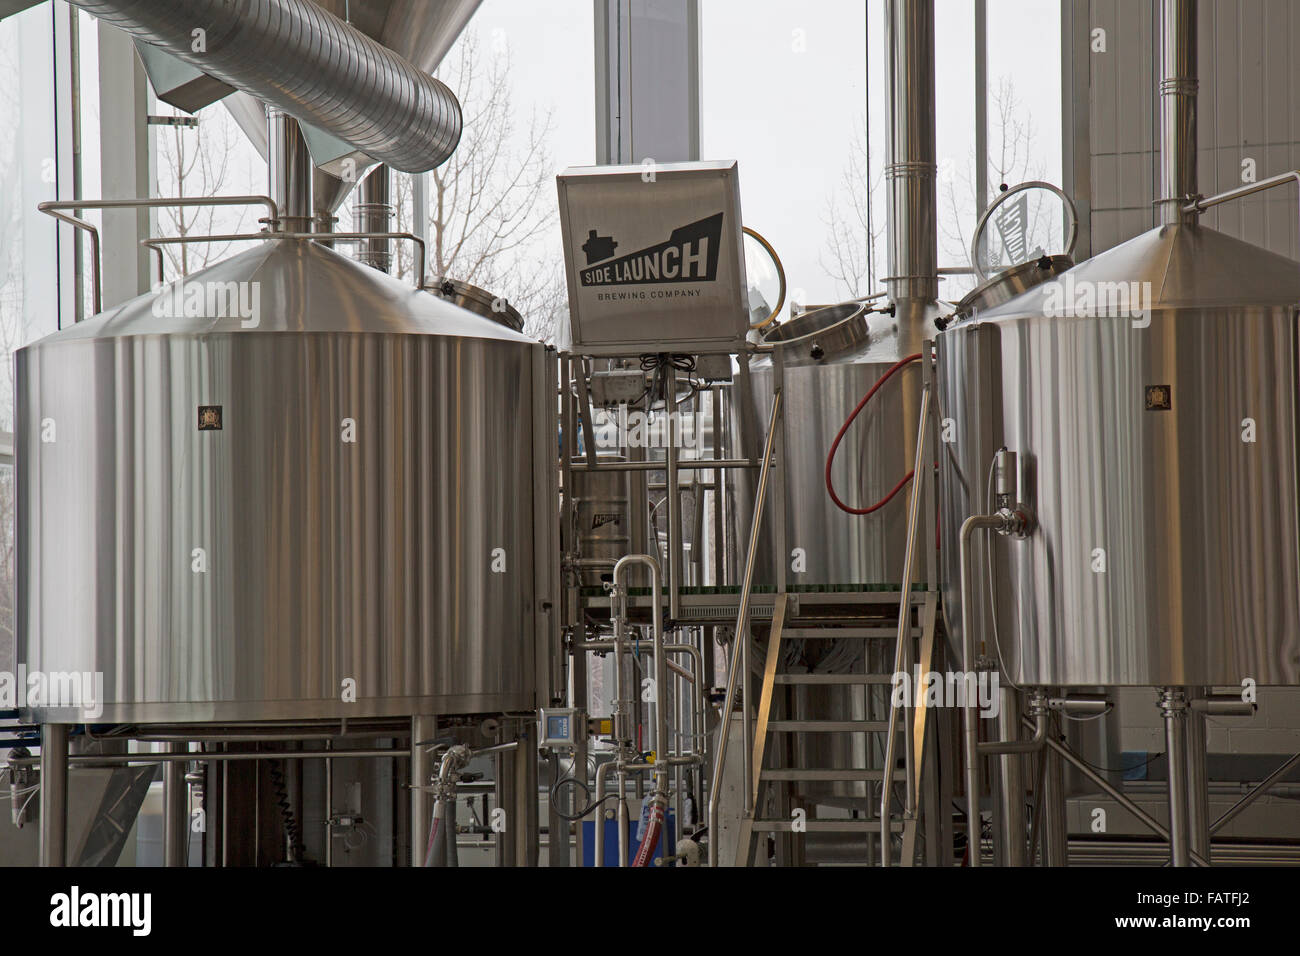 Inside the Side Launch Micro Brewery in Collingwood, Ontario, Canada Stock Photo